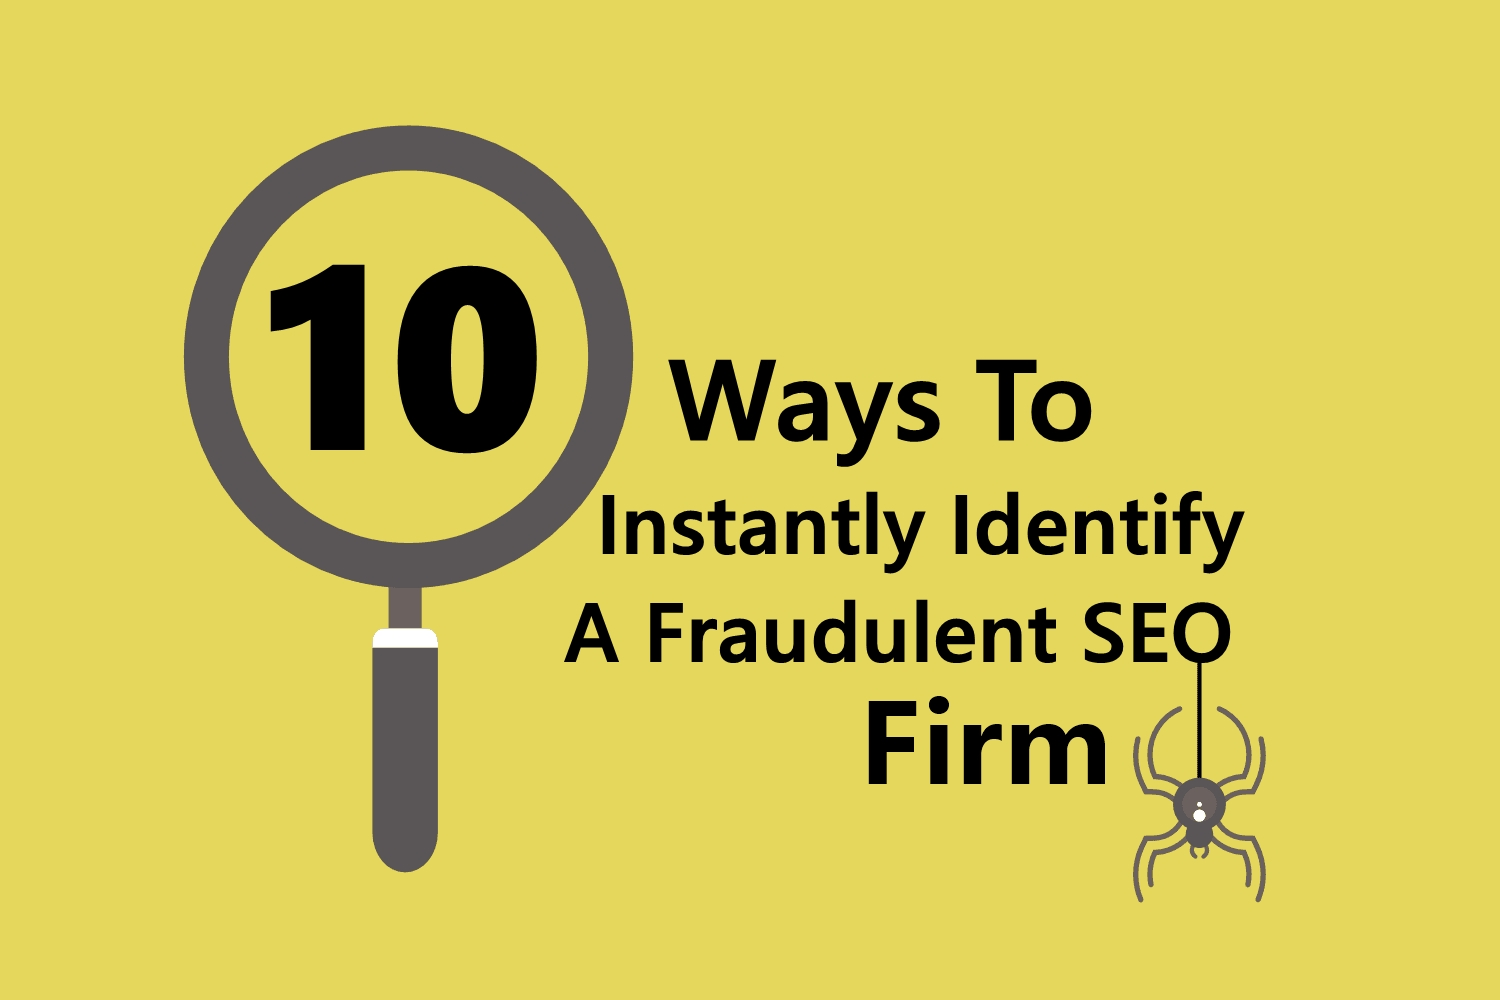 10 Ways to Instantly Identify a Fraudulent SEO Firm